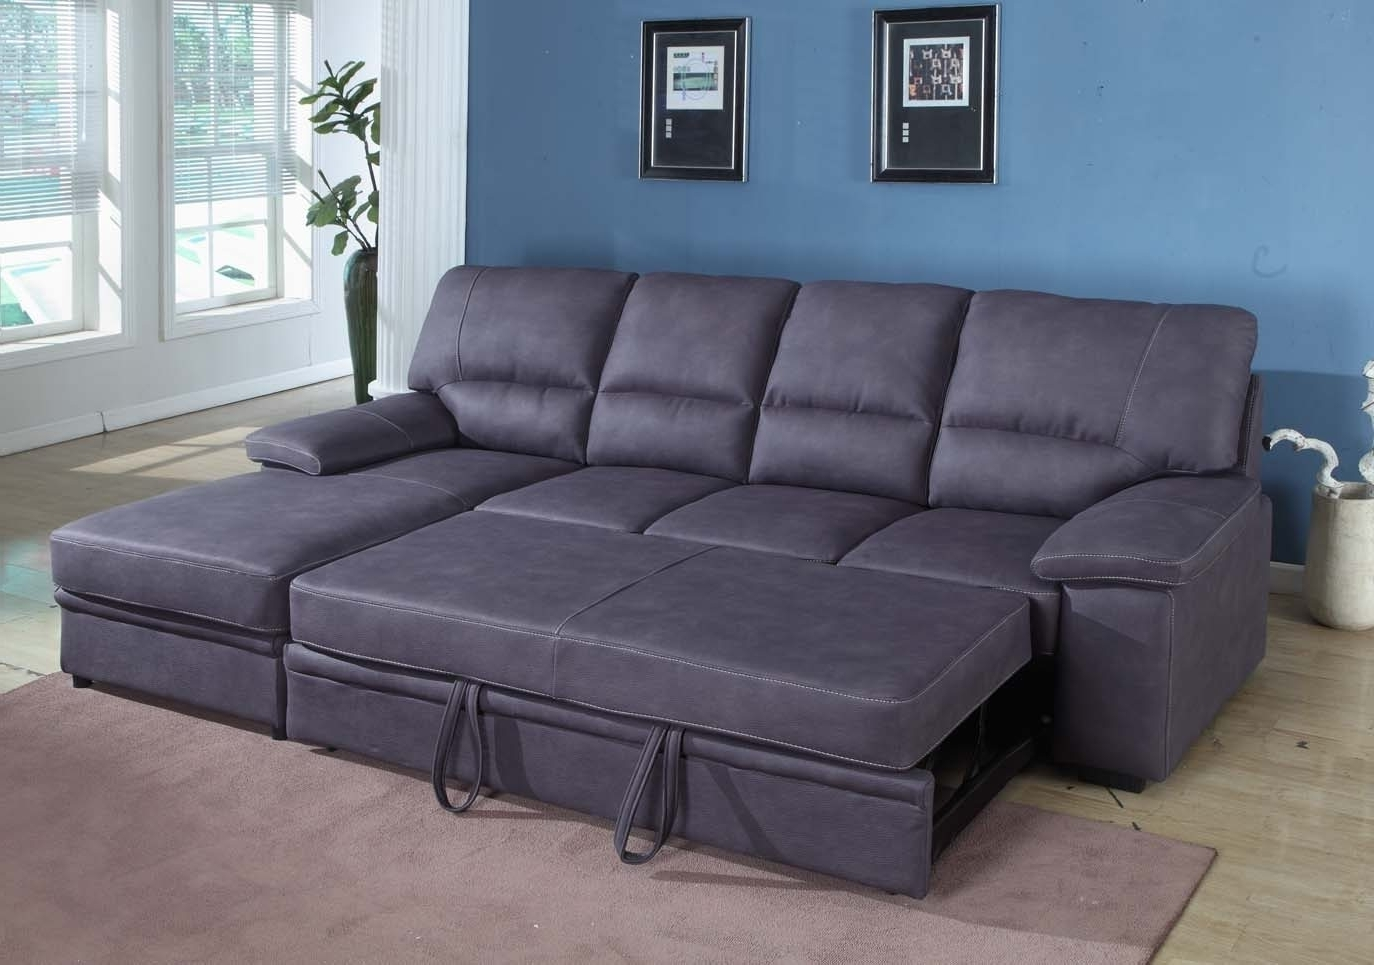 Pull Out Beds Sectional Sofas Pertaining To Recent Sofa : Double Size Sleeper Sofa Cheap Pull Out Couch Bed Pull Out (View 12 of 15)